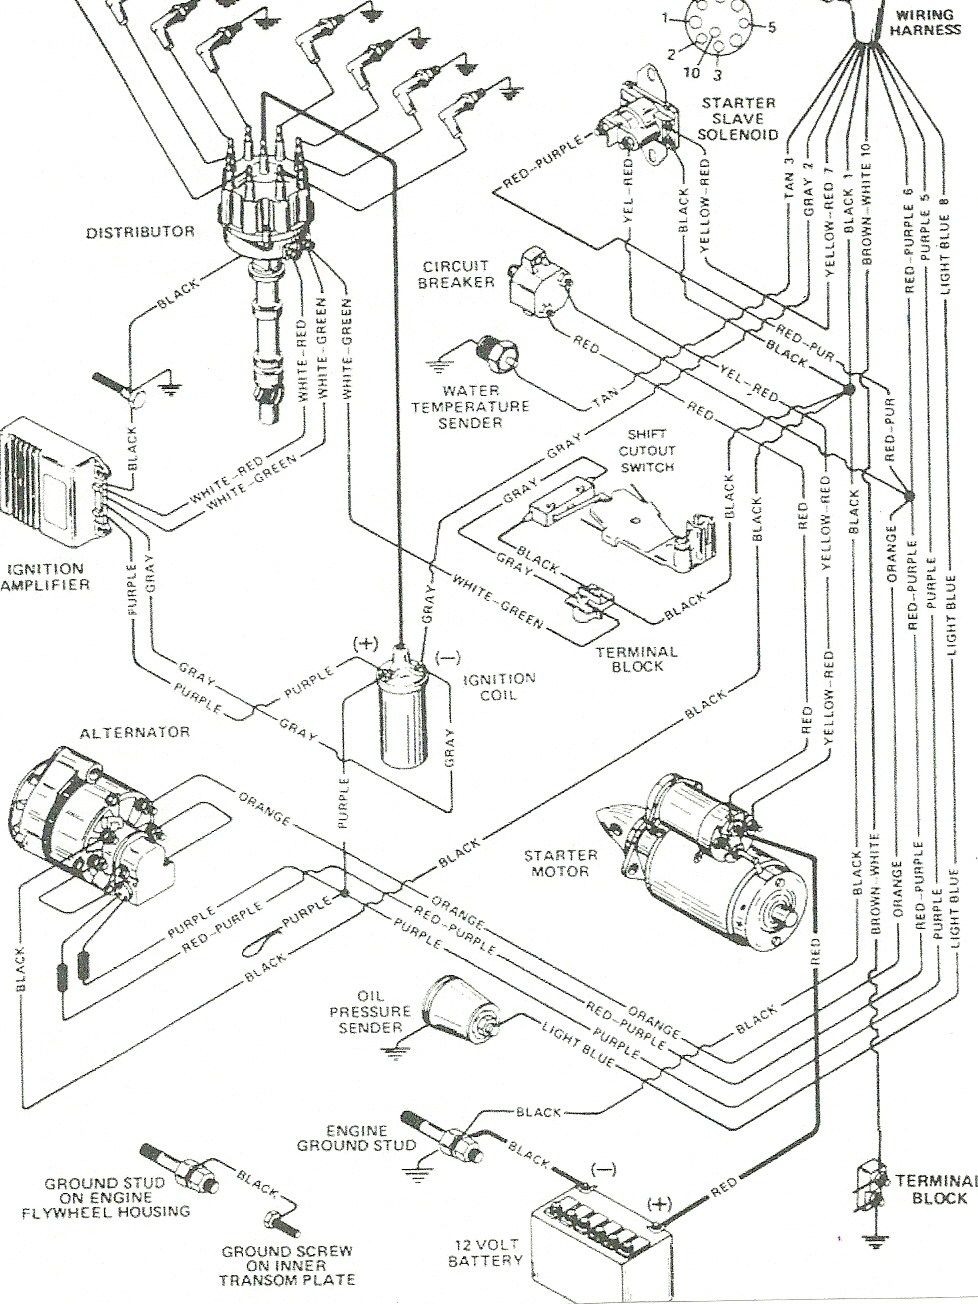 Mercruiser 3.0 Wiring Schematic - Wiring Diagram Local on leviton gfci wiring-diagram, ford f550 wiring-diagram, international 4300 wiring-diagram, honeywell aquastat wiring-diagram, sears craftsman wiring-diagram, isuzu npr wiring-diagram, emg pickups wiring-diagram, trim sender wiring-diagram, voltmeter wiring-diagram, peterbilt 387 wiring-diagram, leviton dimmer wiring-diagram, sea ray wiring-diagram, ford e-150 wiring-diagram, swm splitter wiring-diagram, lutron dimmer wiring-diagram, chevrolet colorado wiring-diagram, farmall cub wiring-diagram, gibson humbucker wiring-diagram, klipsch promedia 2.1 wiring-diagram, mercedes-benz wiring-diagram,